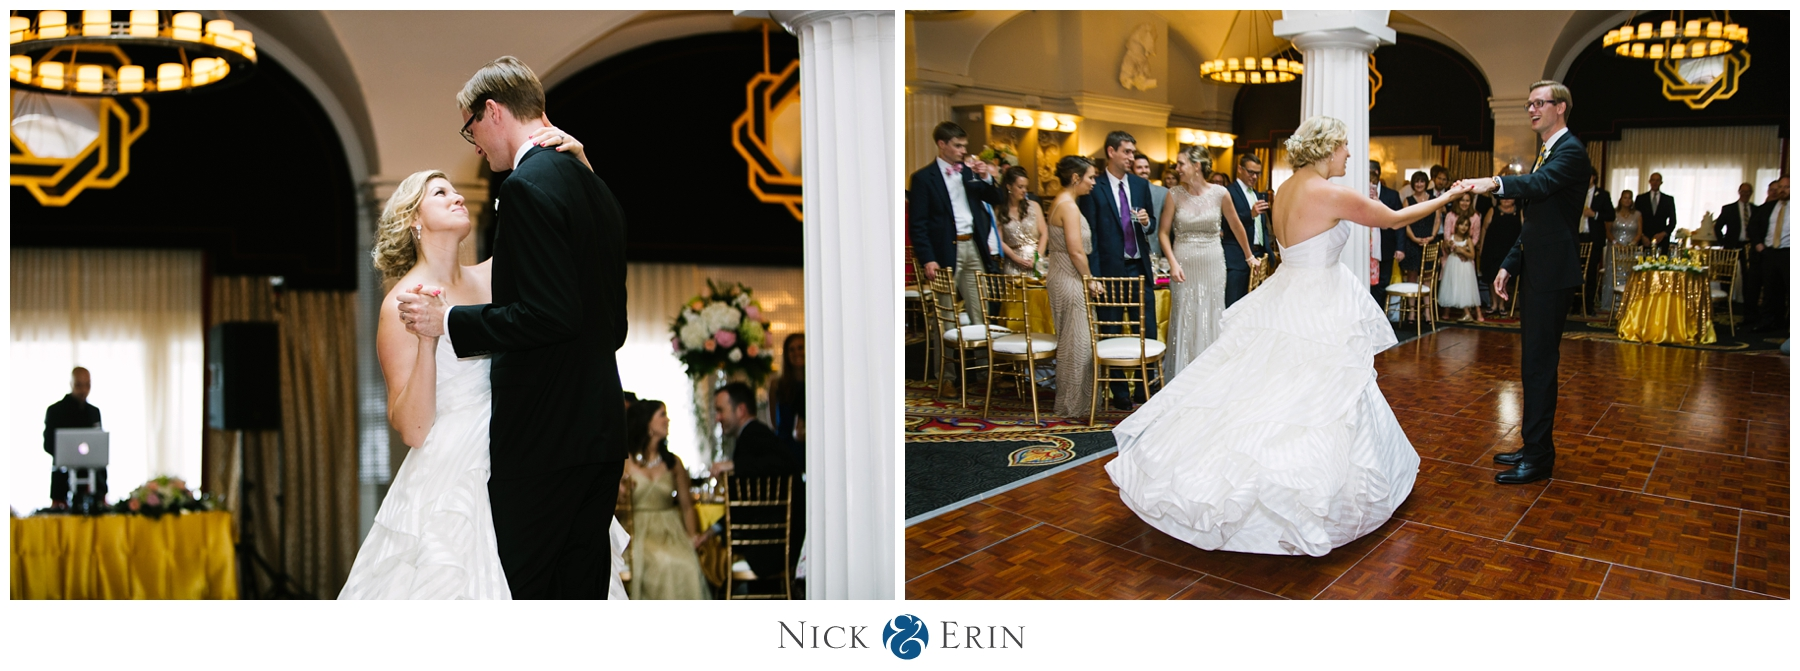 Donner_Photography_Washington DC Wedding_Rachel & Taylor_0054